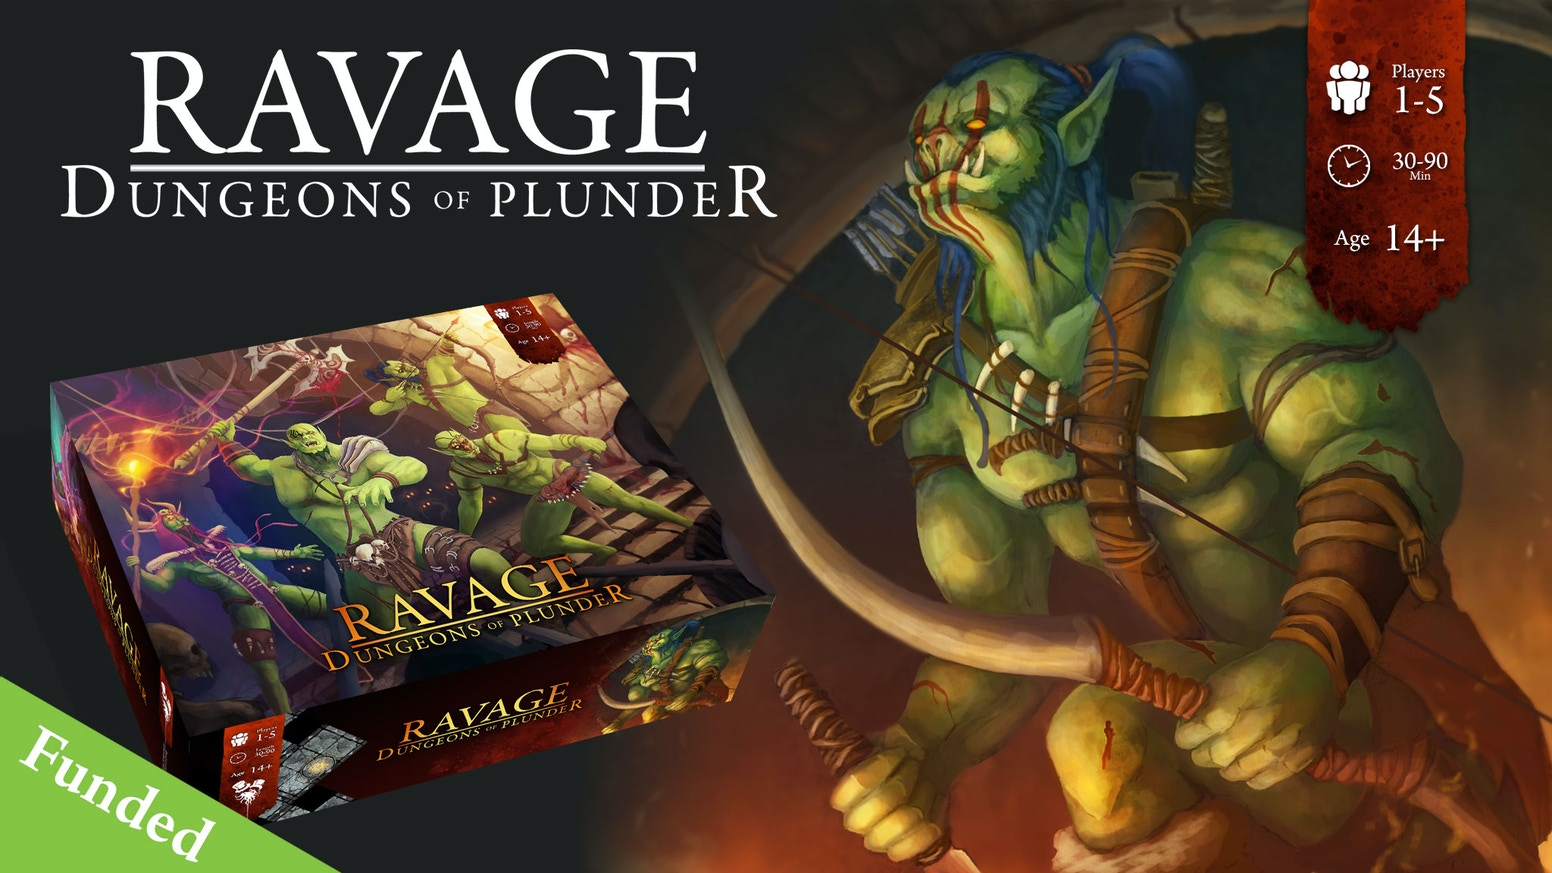 A dungeon delving board game where you play Orcs, featuring 3 game modes Solo, Co-Op and Treachery for 1-5 players.